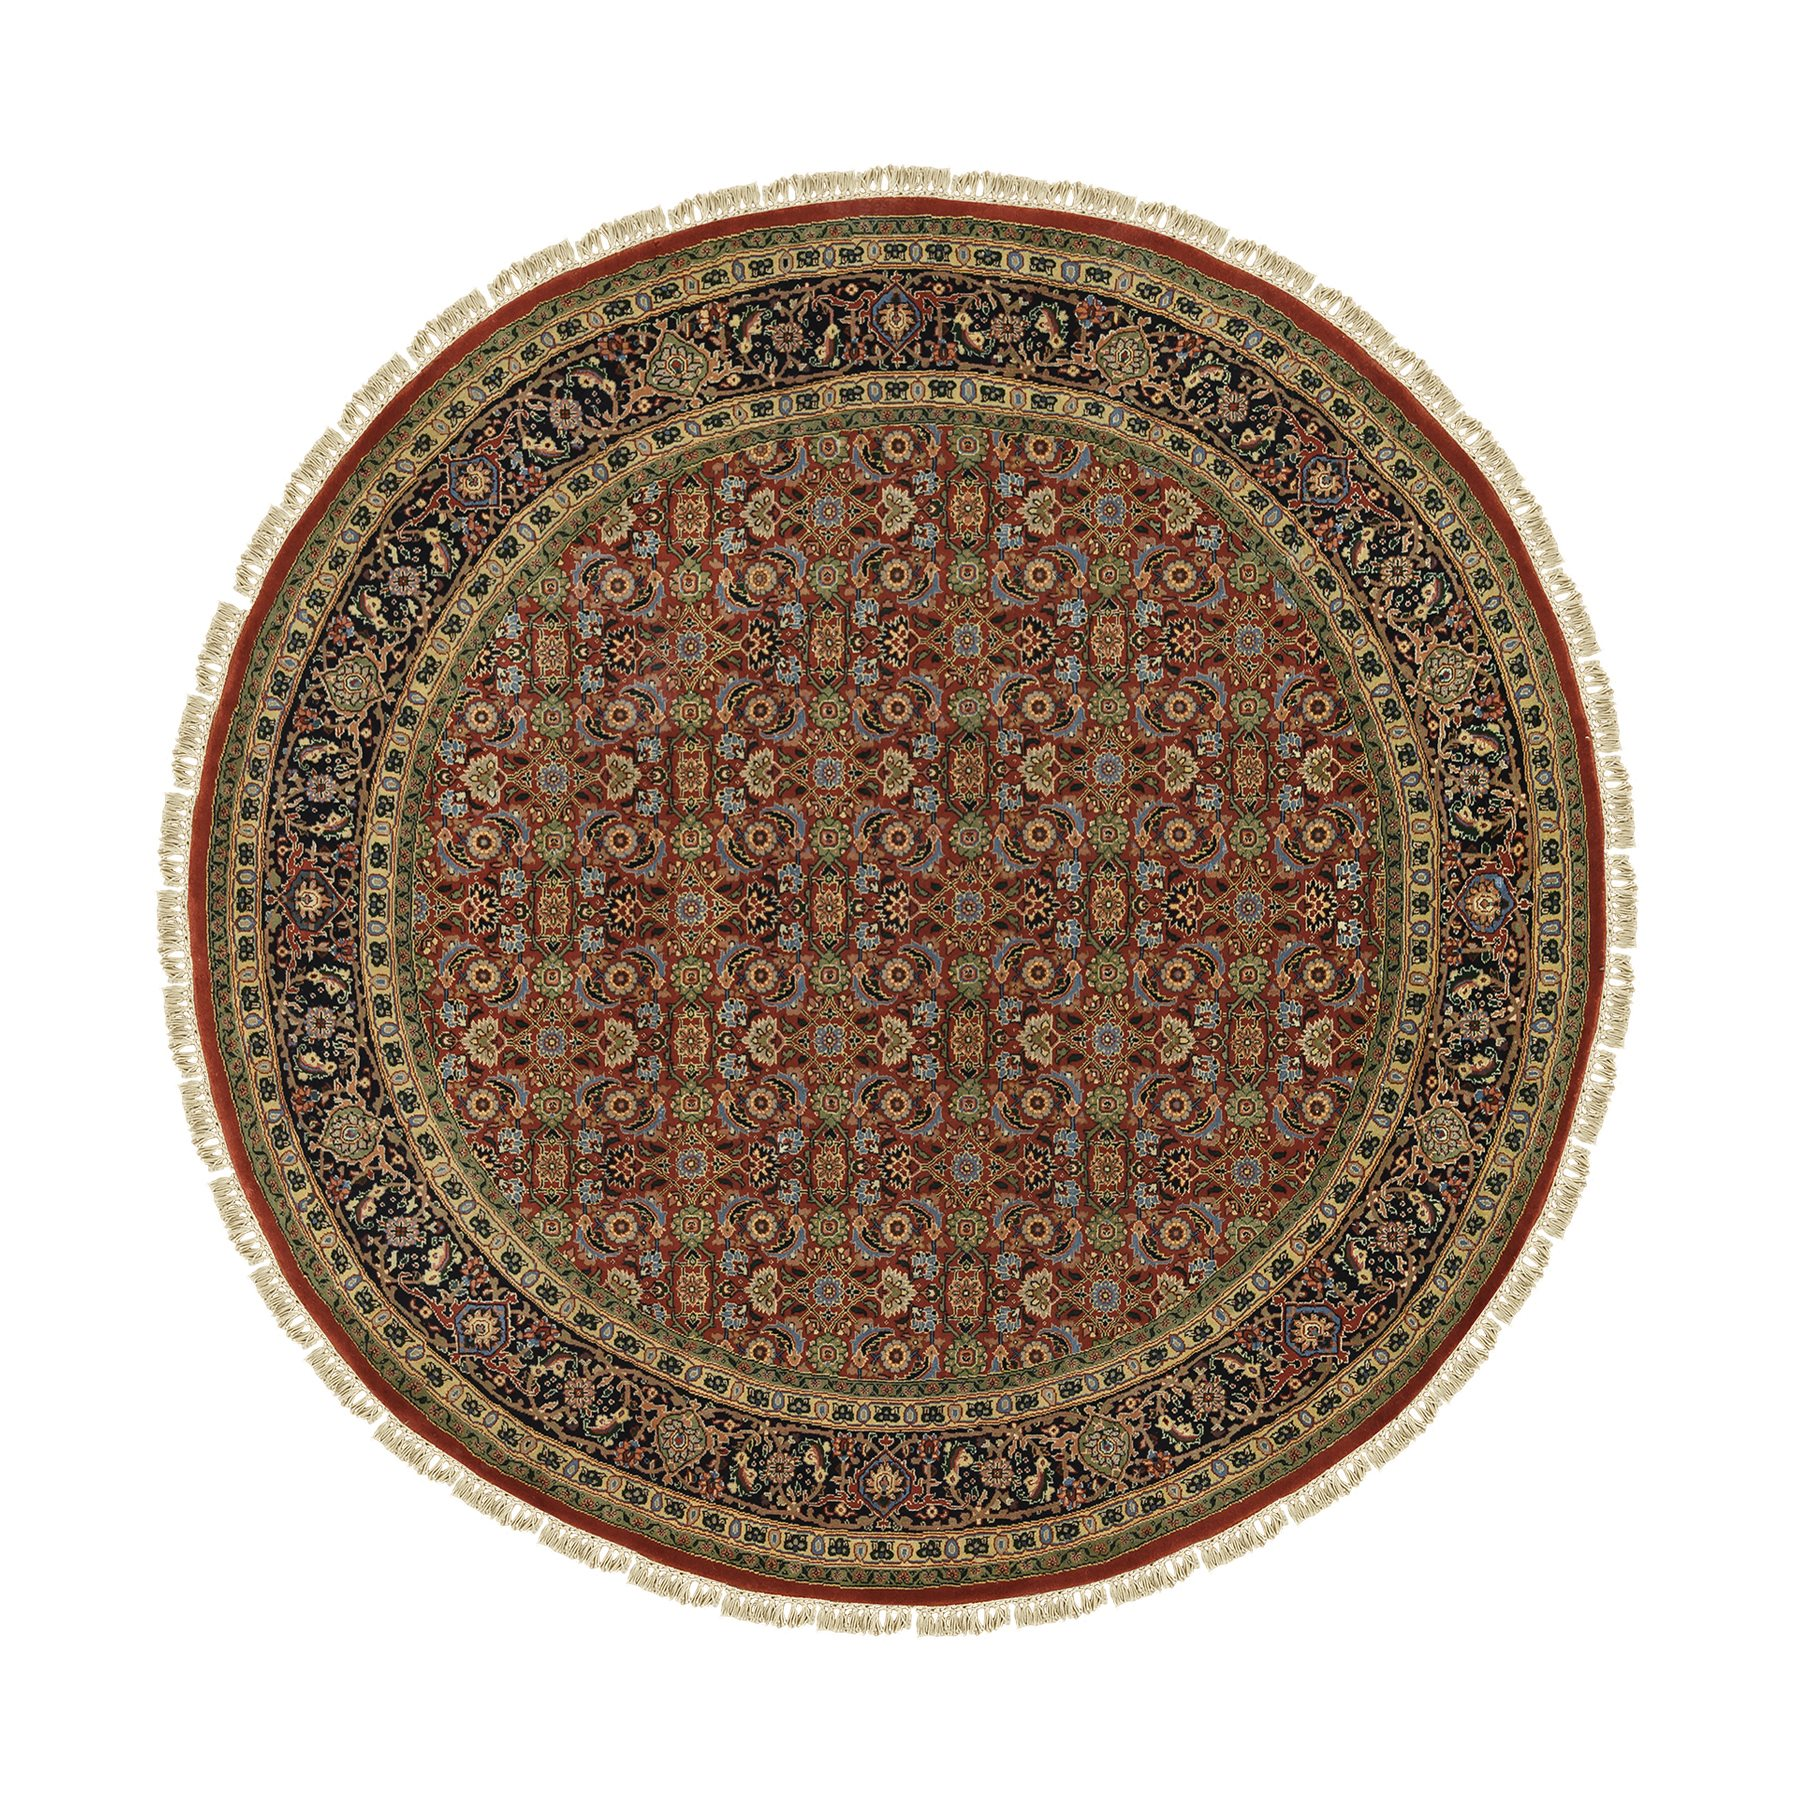 Pirniakan Collection Hand Knotted Red Rug No: 1125980